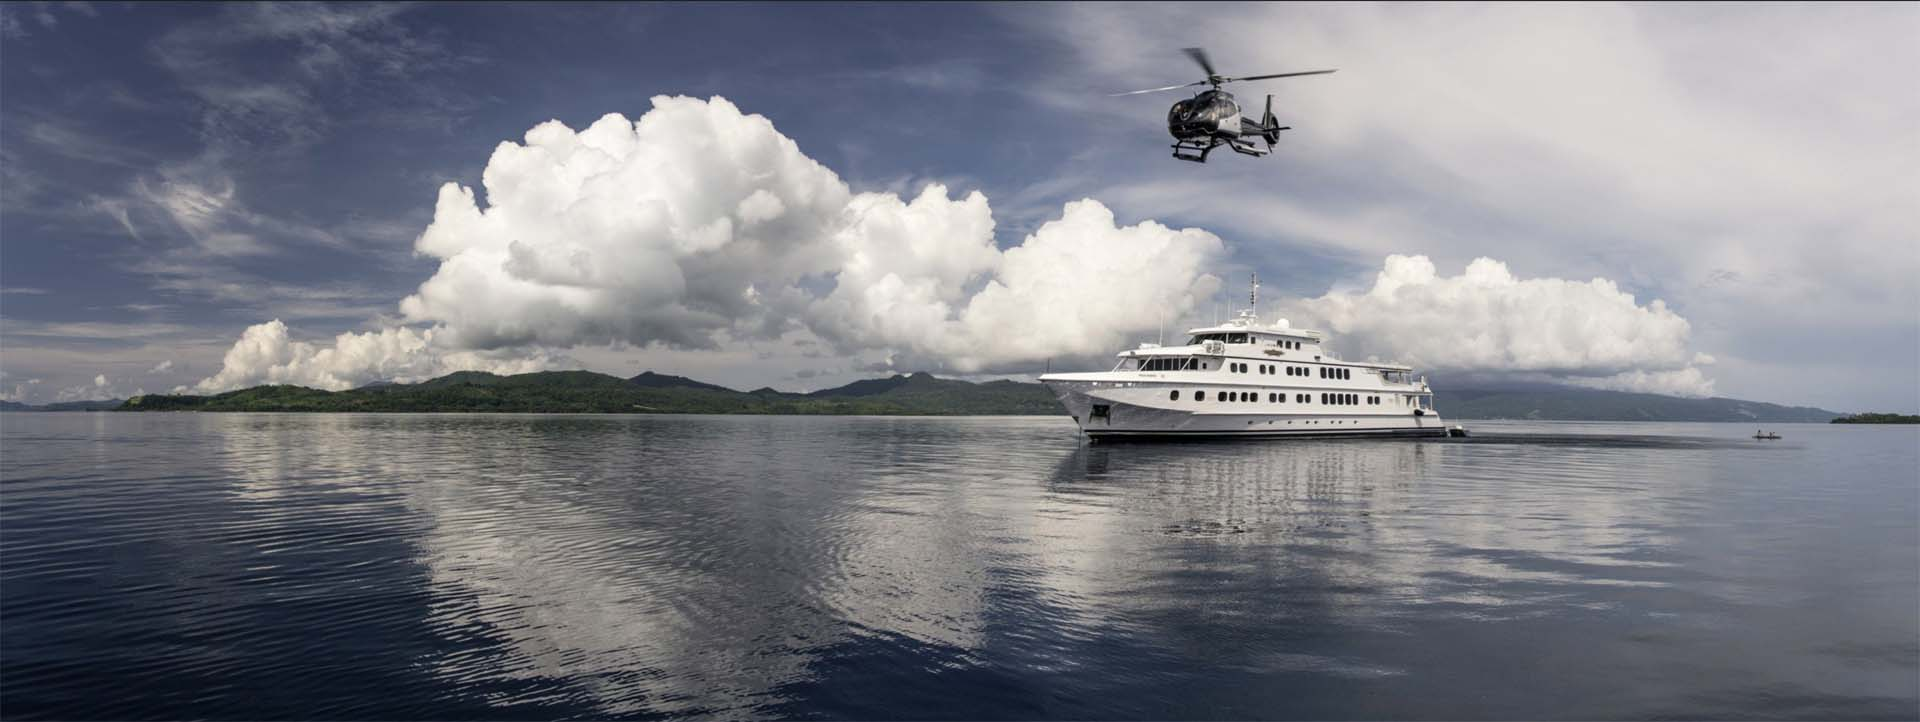 TRUE NORTH Kimberley cruise helicopter and vessel grey skies